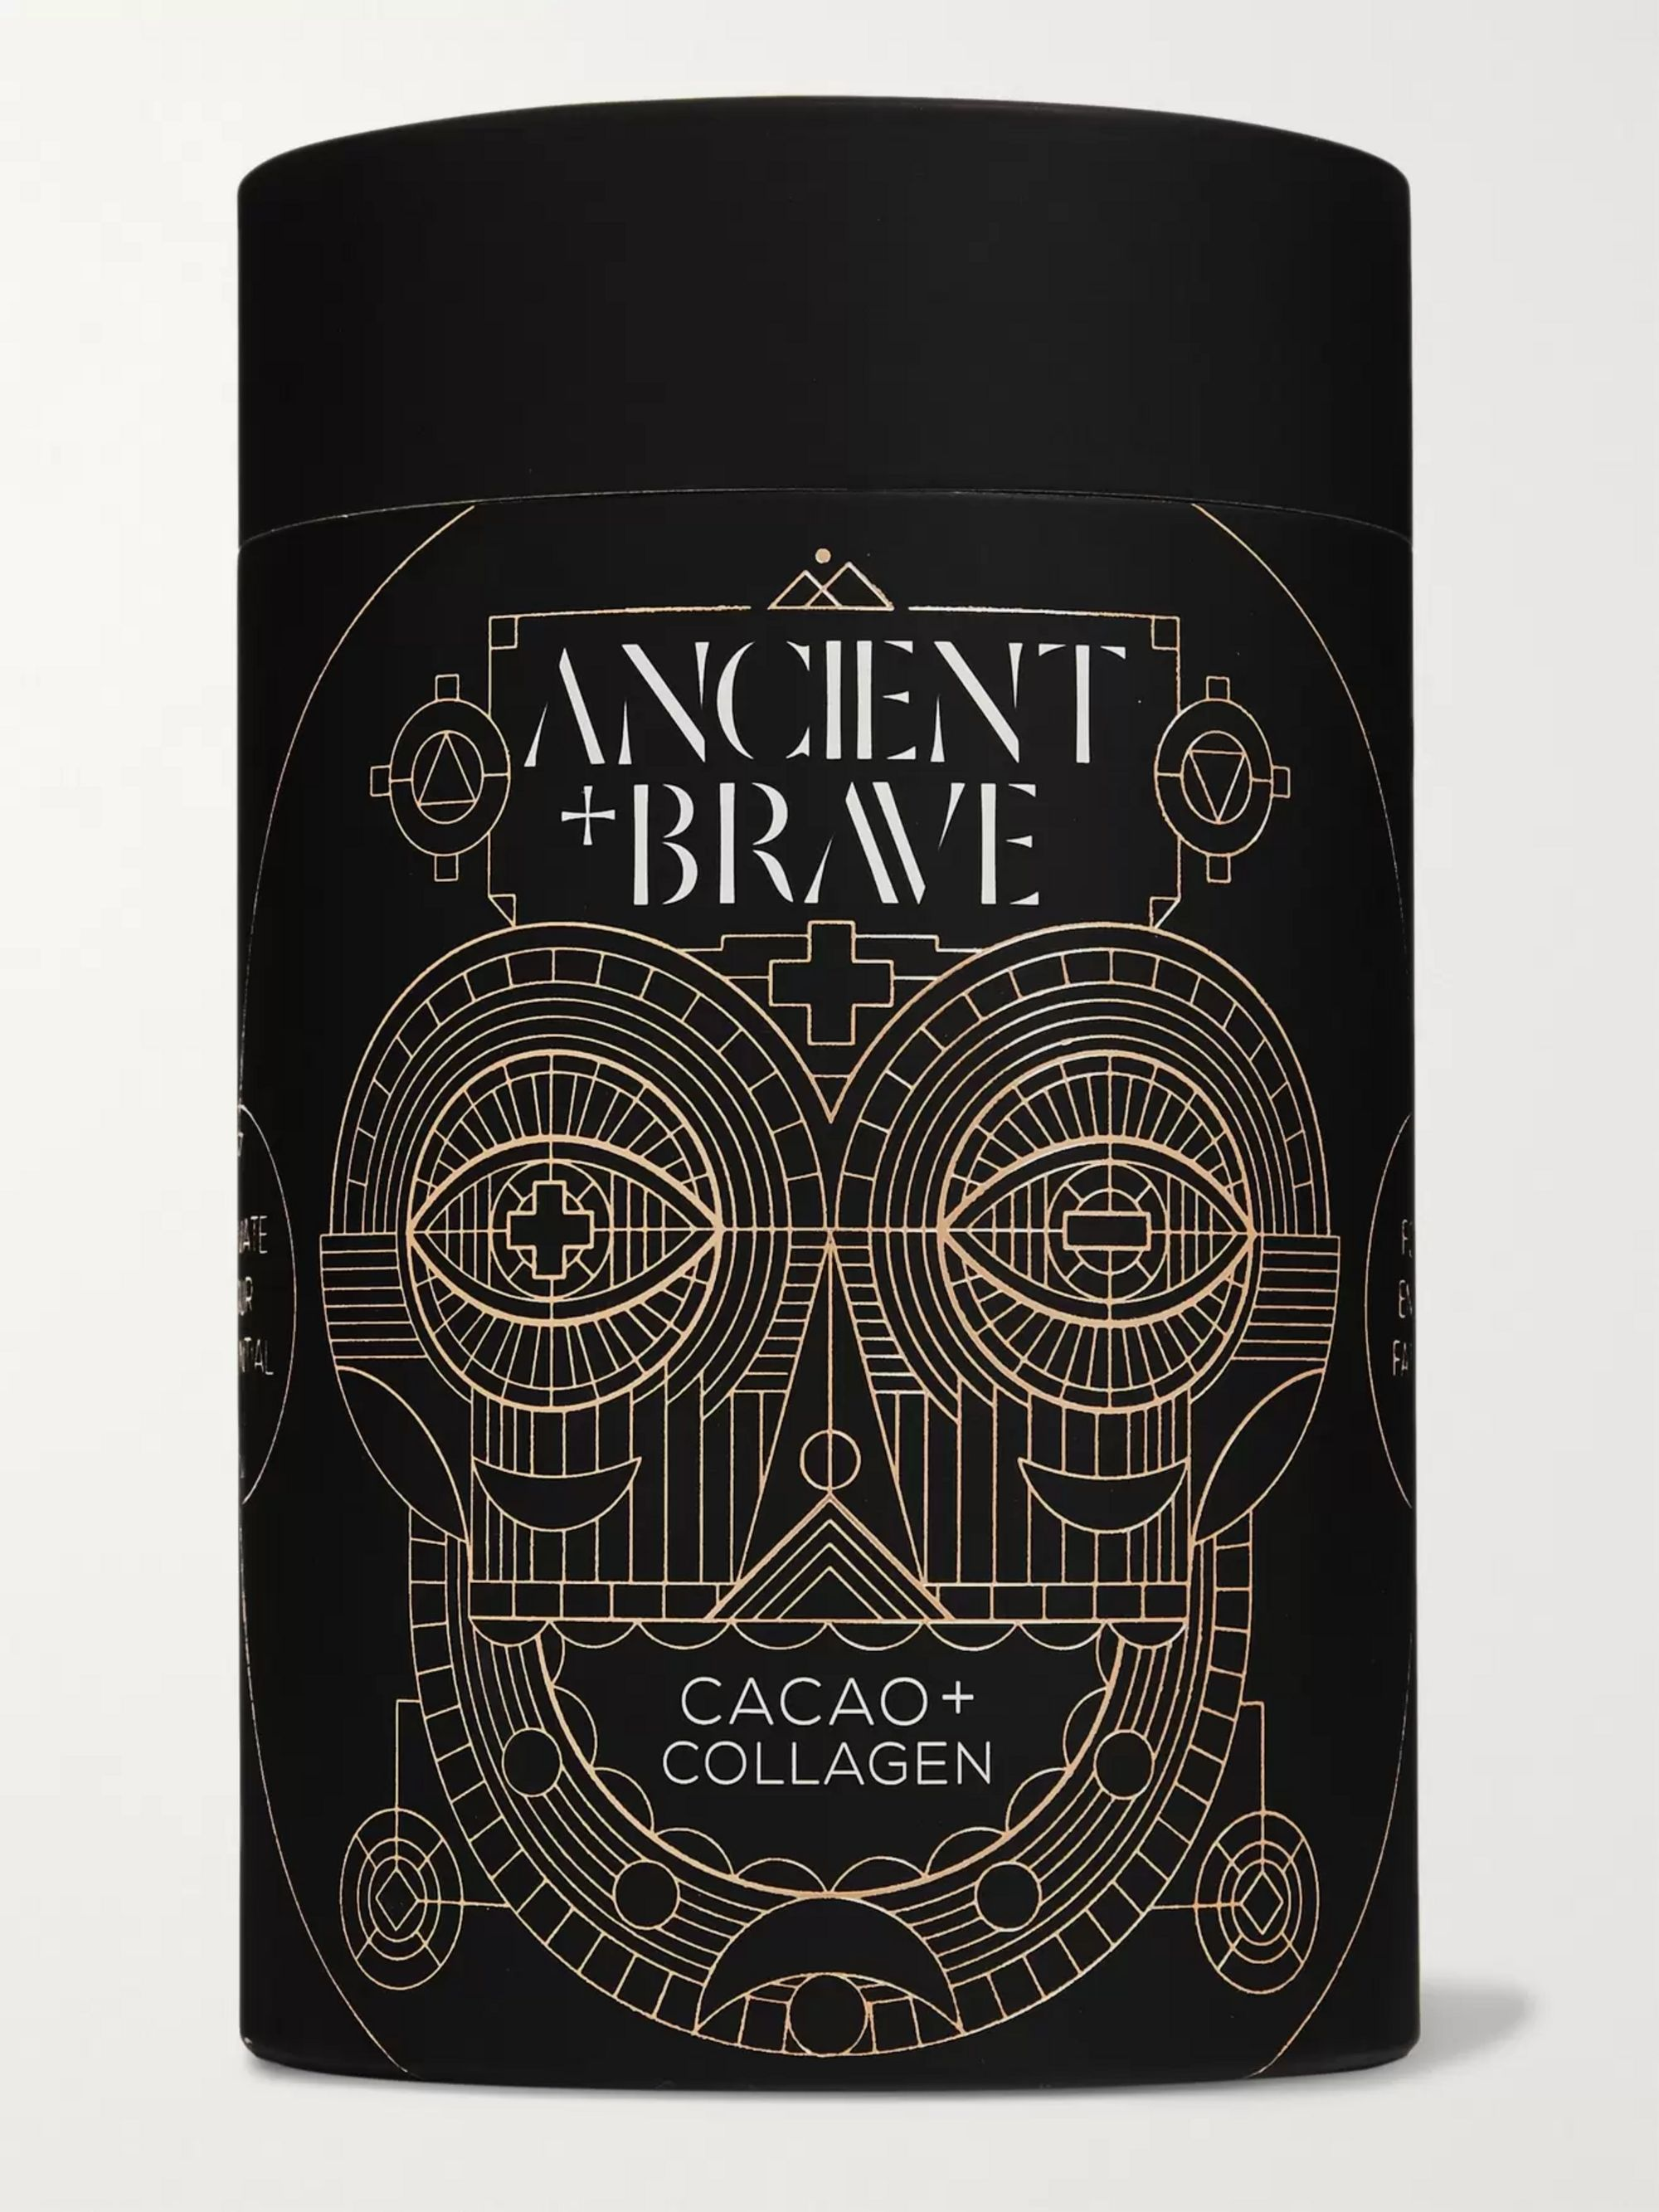 ANCIENT+BRAVE Cacao + Collagen, 250g